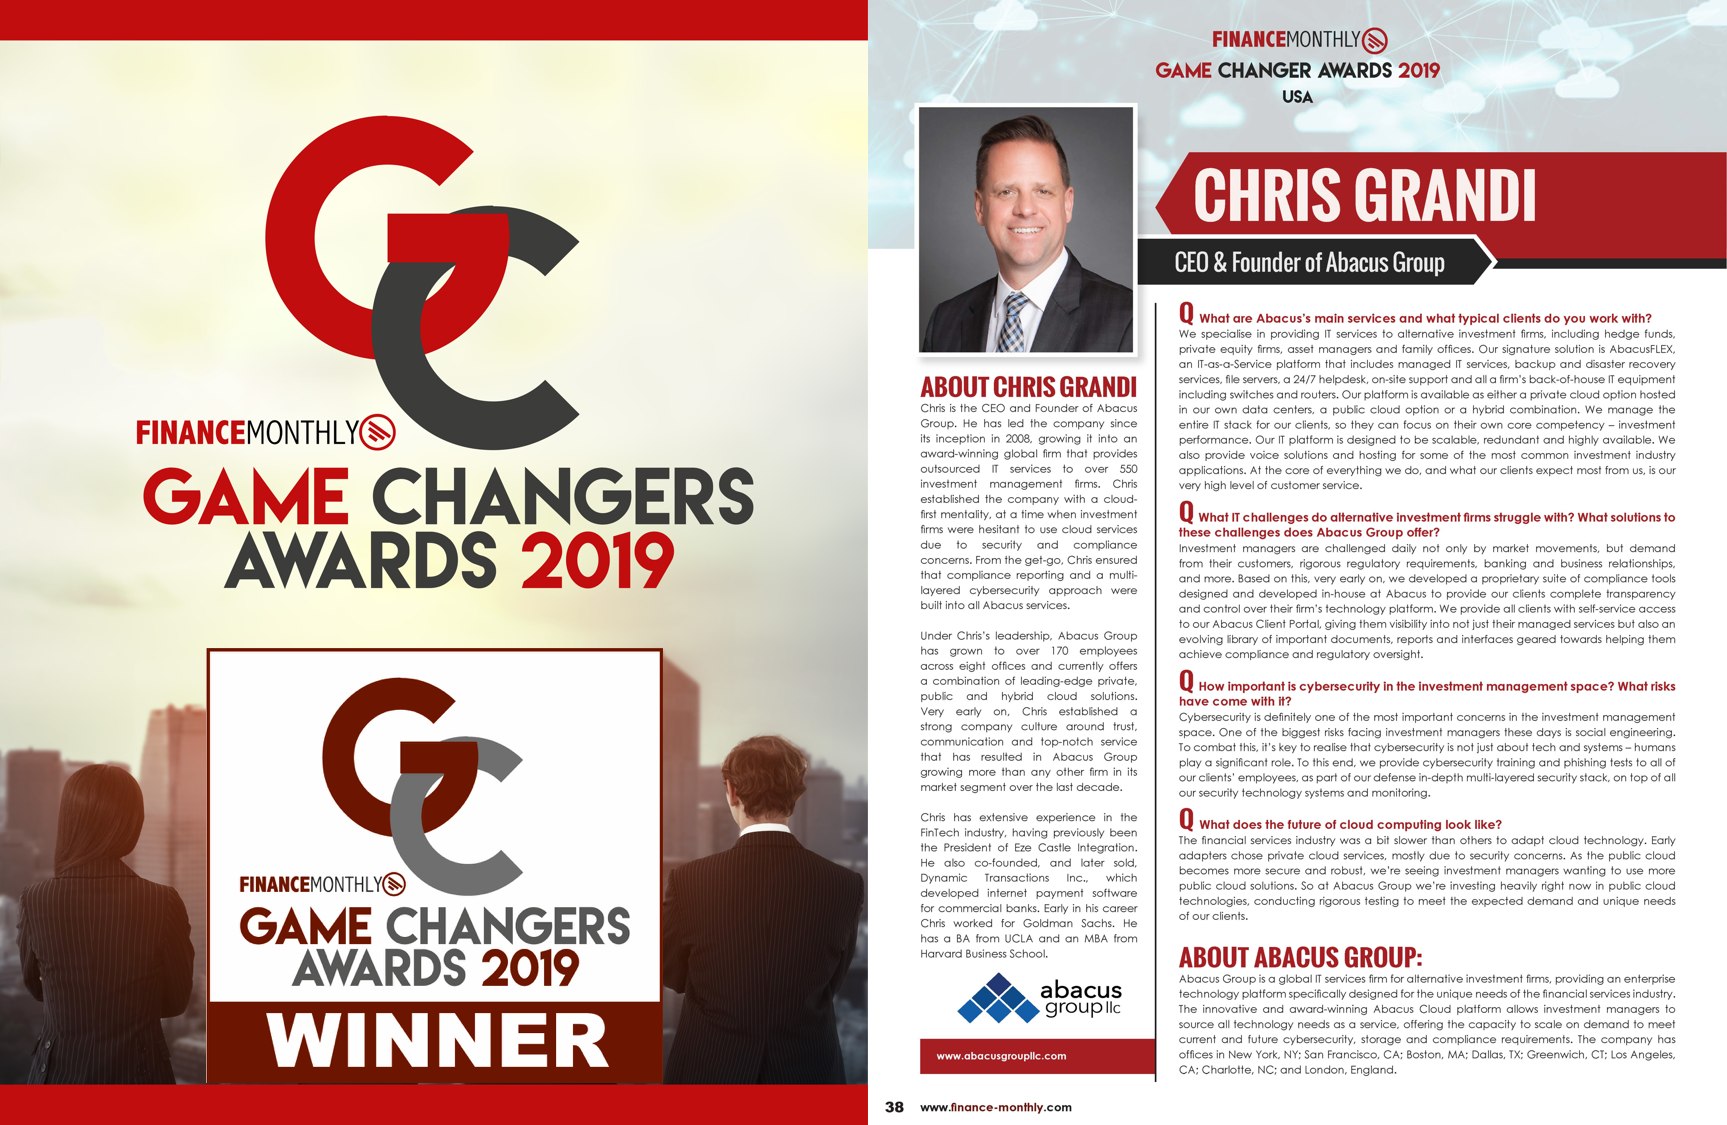 Abacus Group CEO Chris Grandi Named Game Changer by Finance Monthly